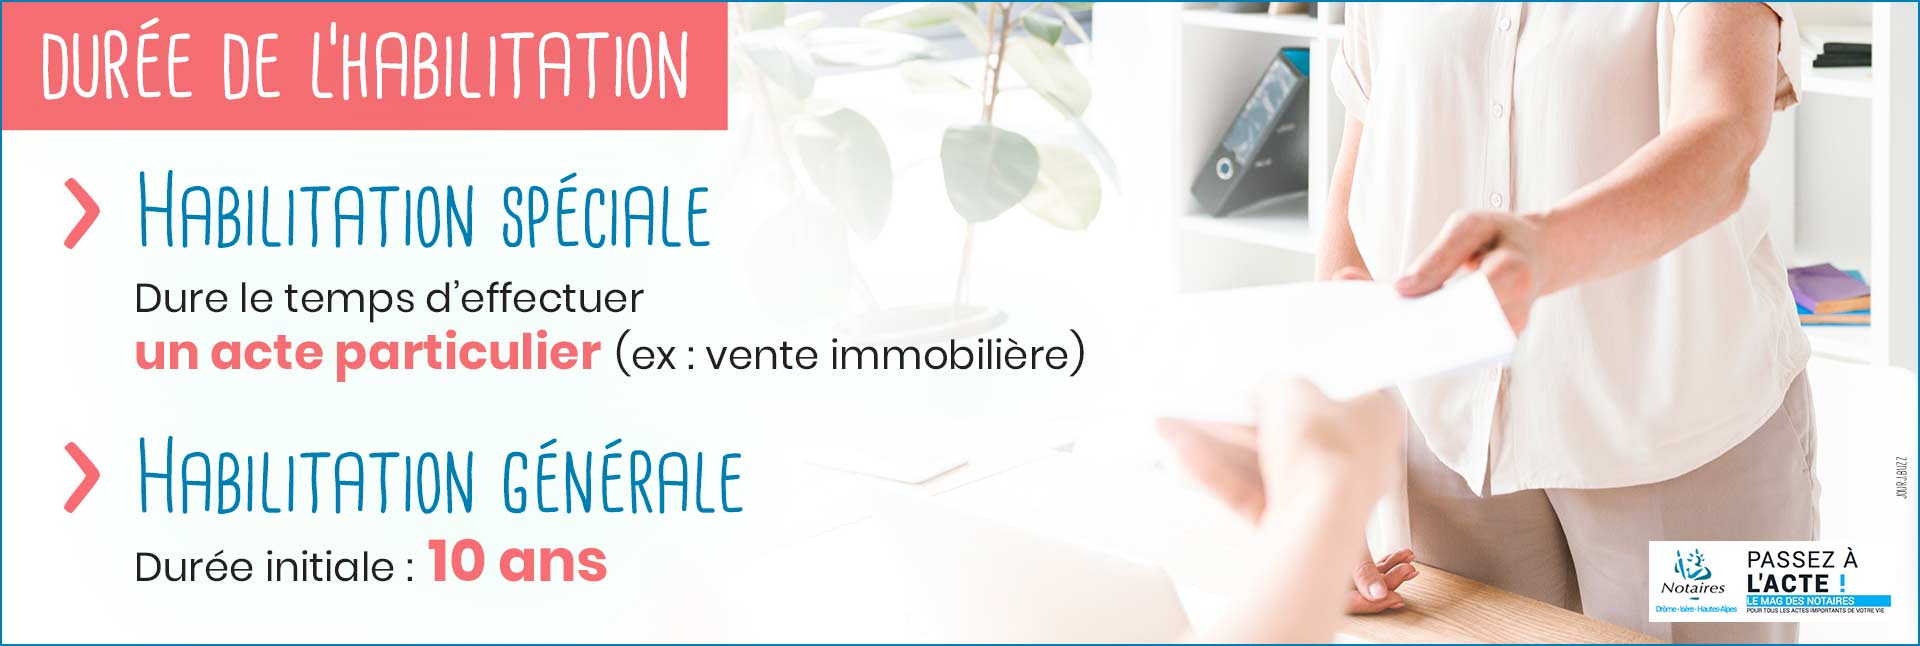 habilitation-familiale-duree